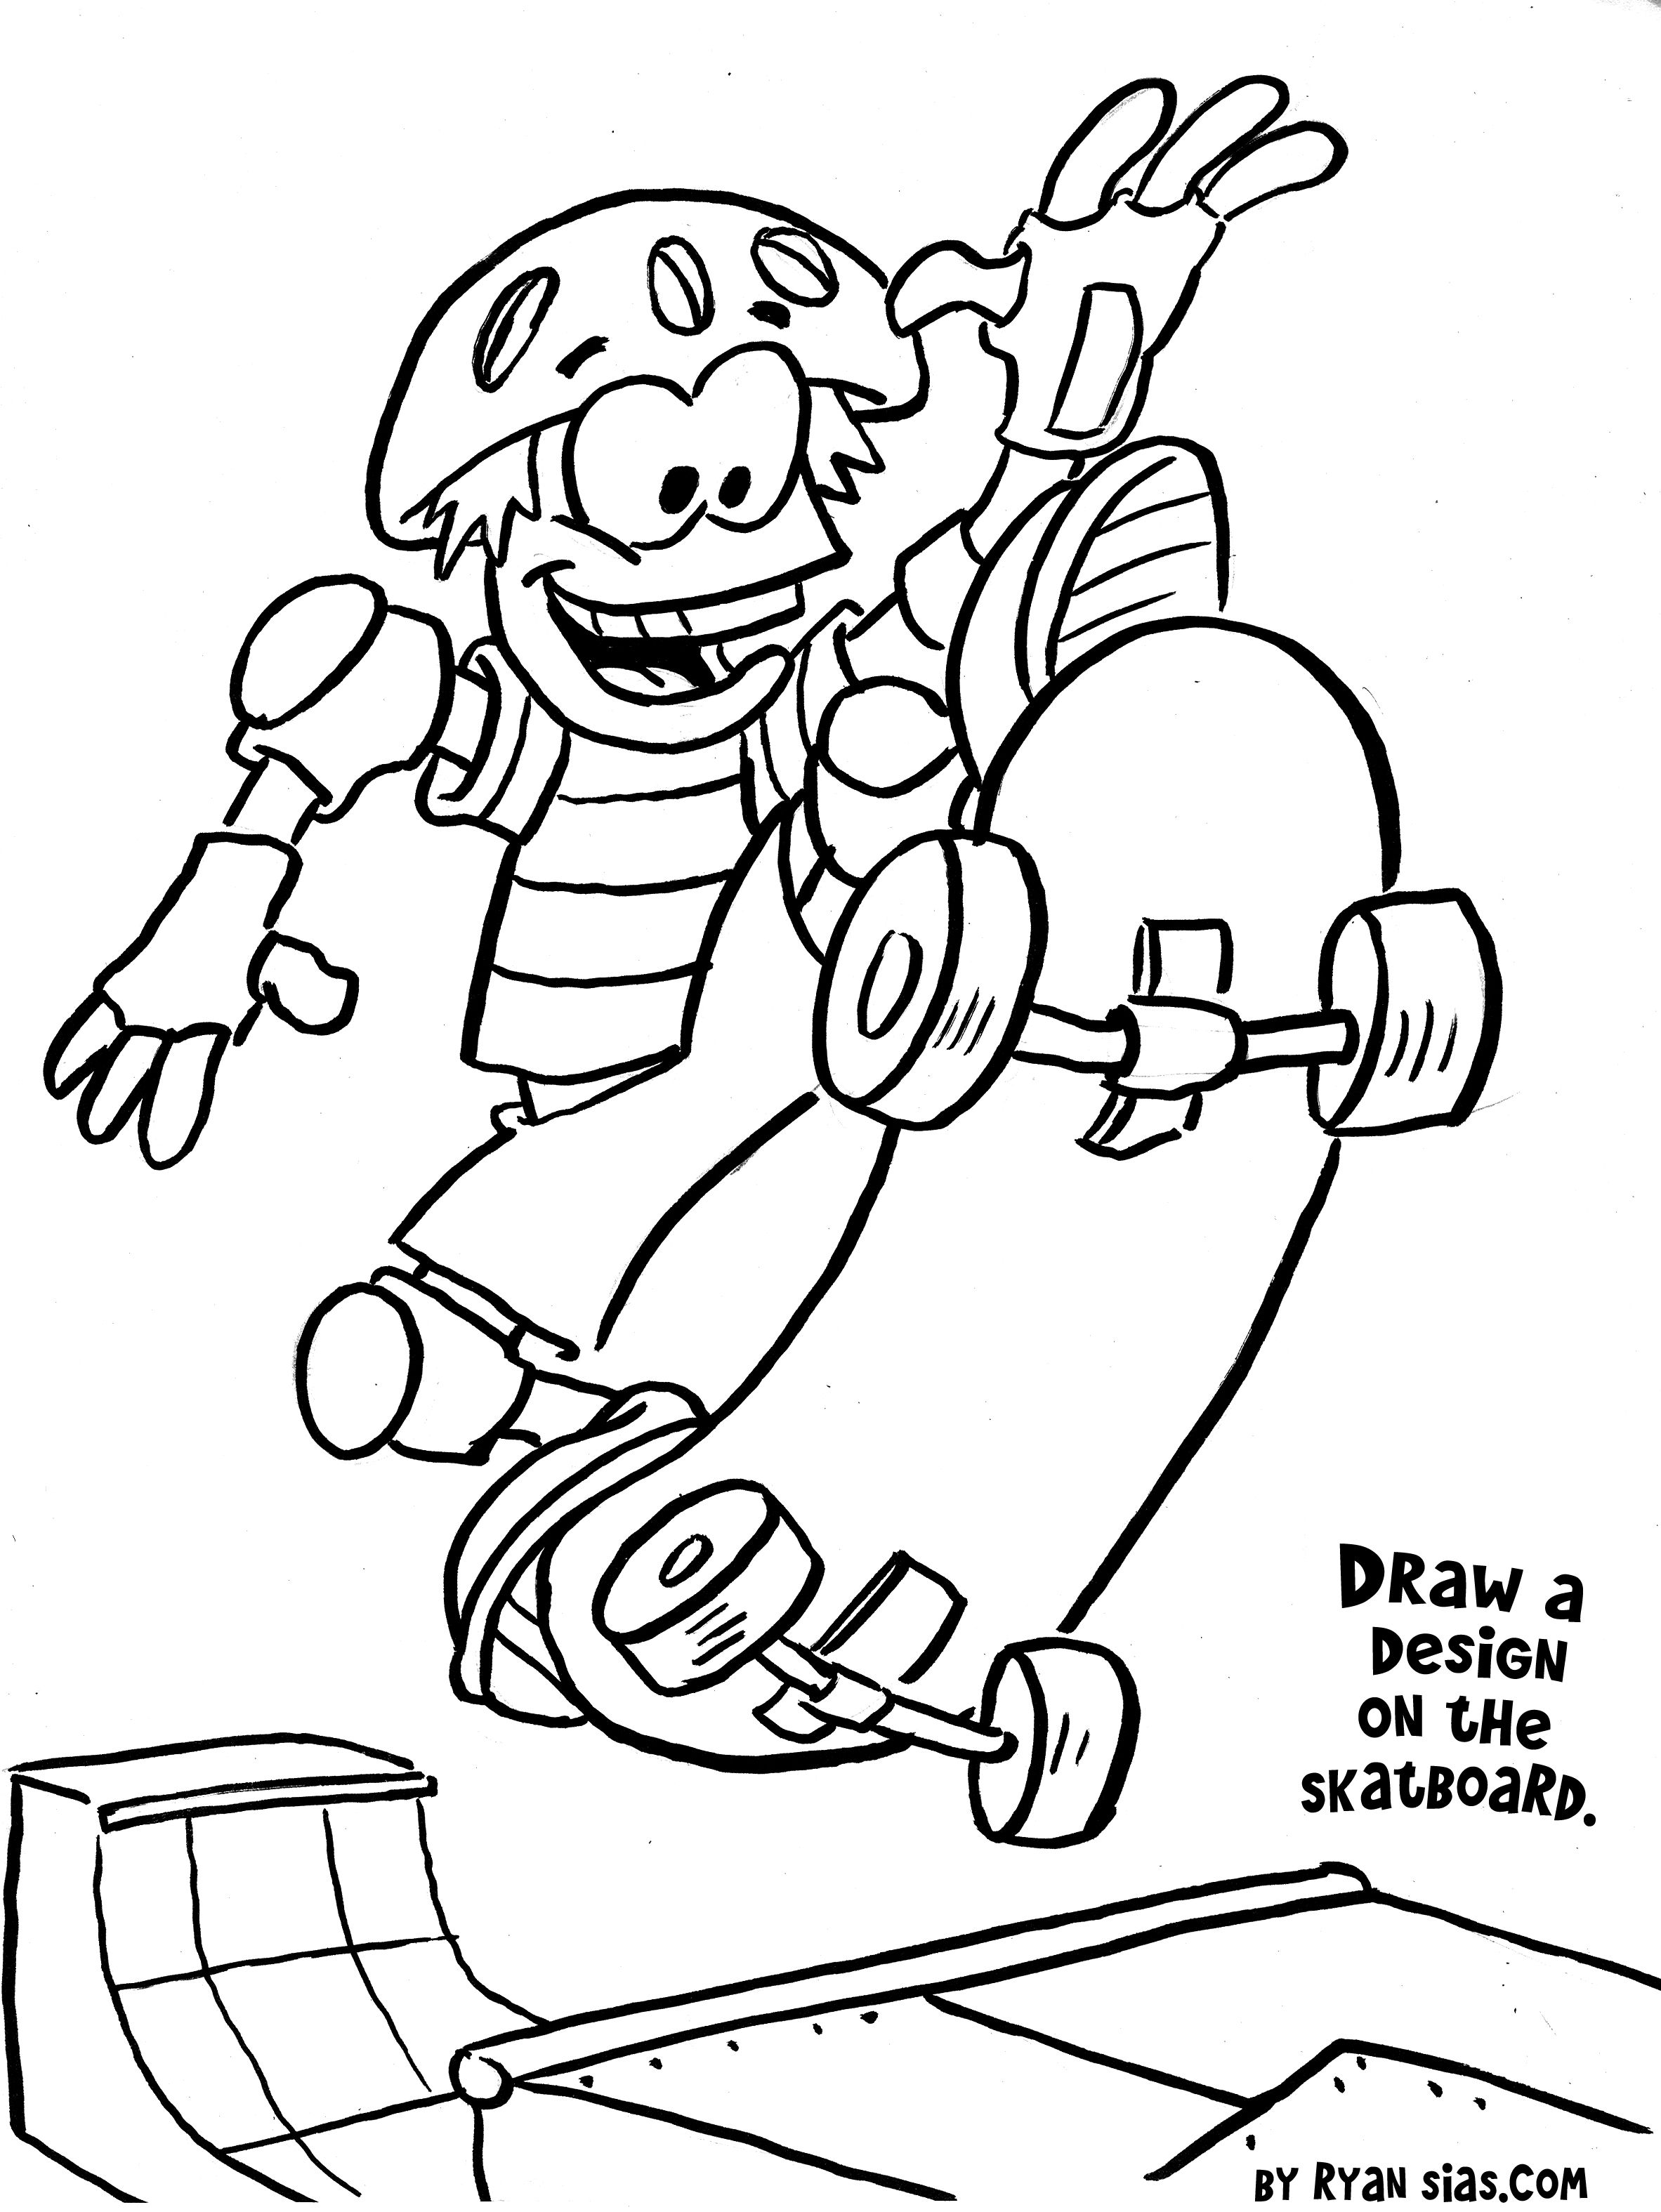 Free Printable Sports Coloring Pages Skateboard